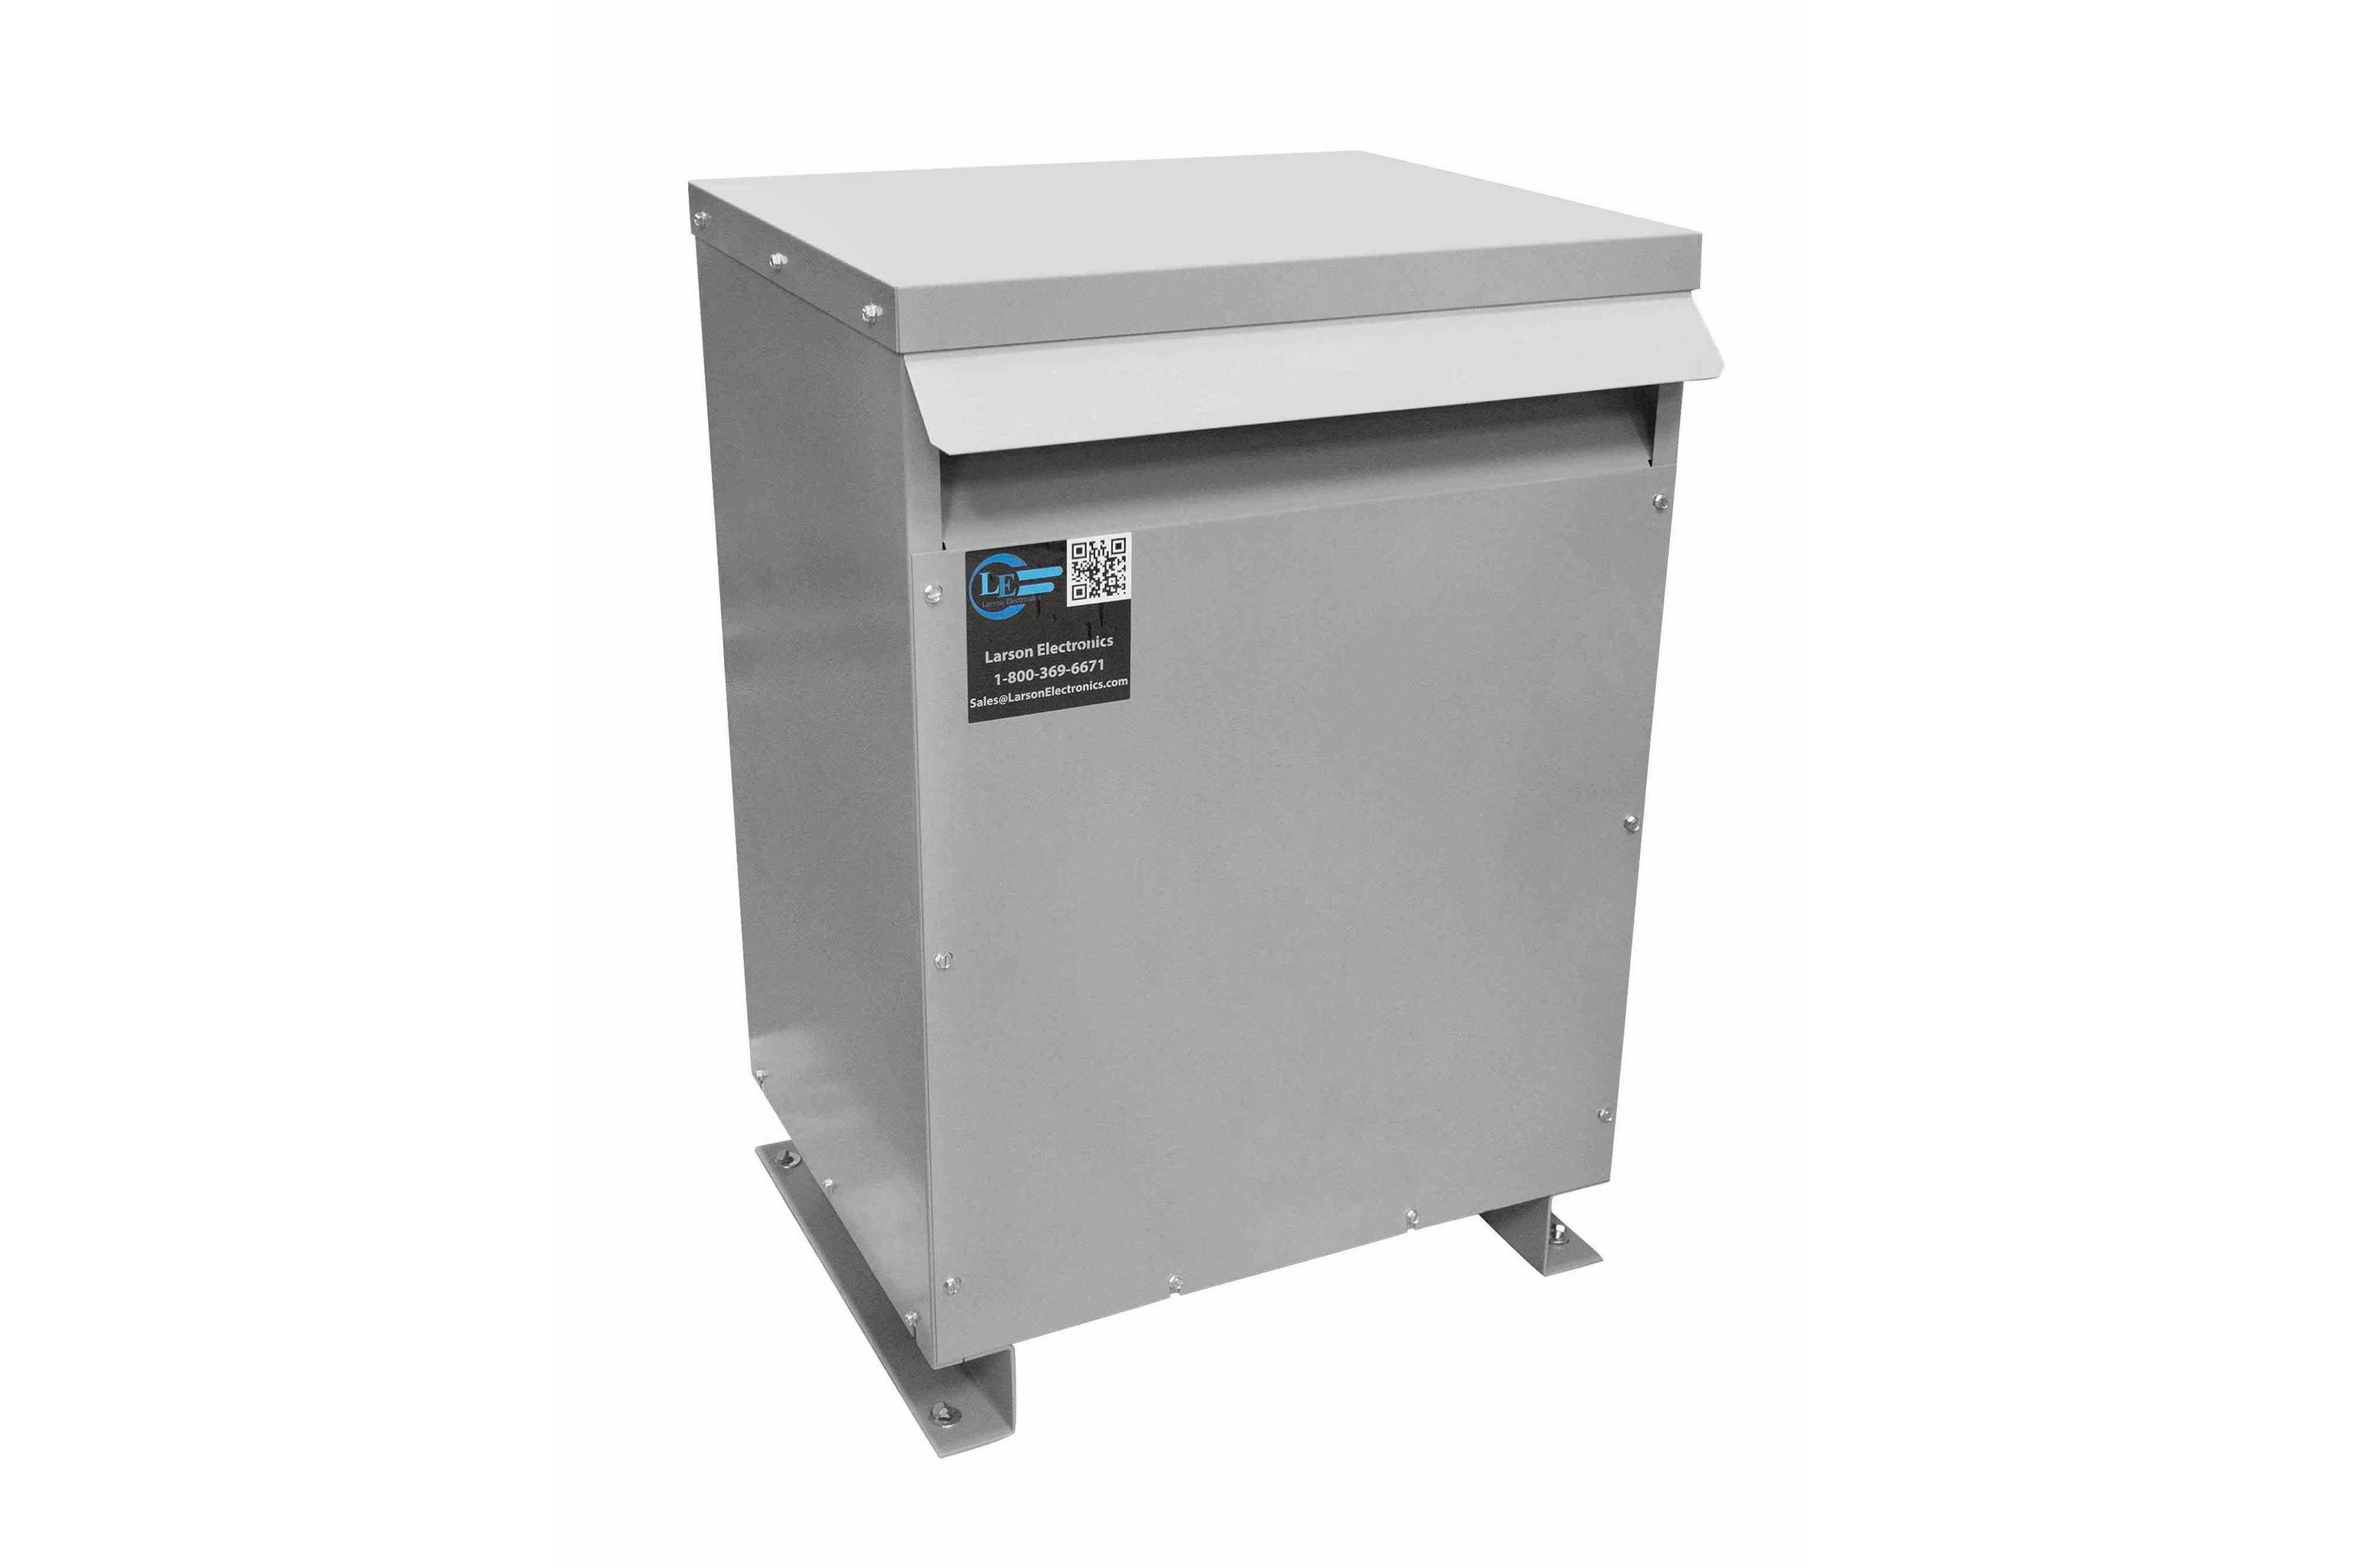 275 kVA 3PH Isolation Transformer, 480V Wye Primary, 380Y/220 Wye-N Secondary, N3R, Ventilated, 60 Hz